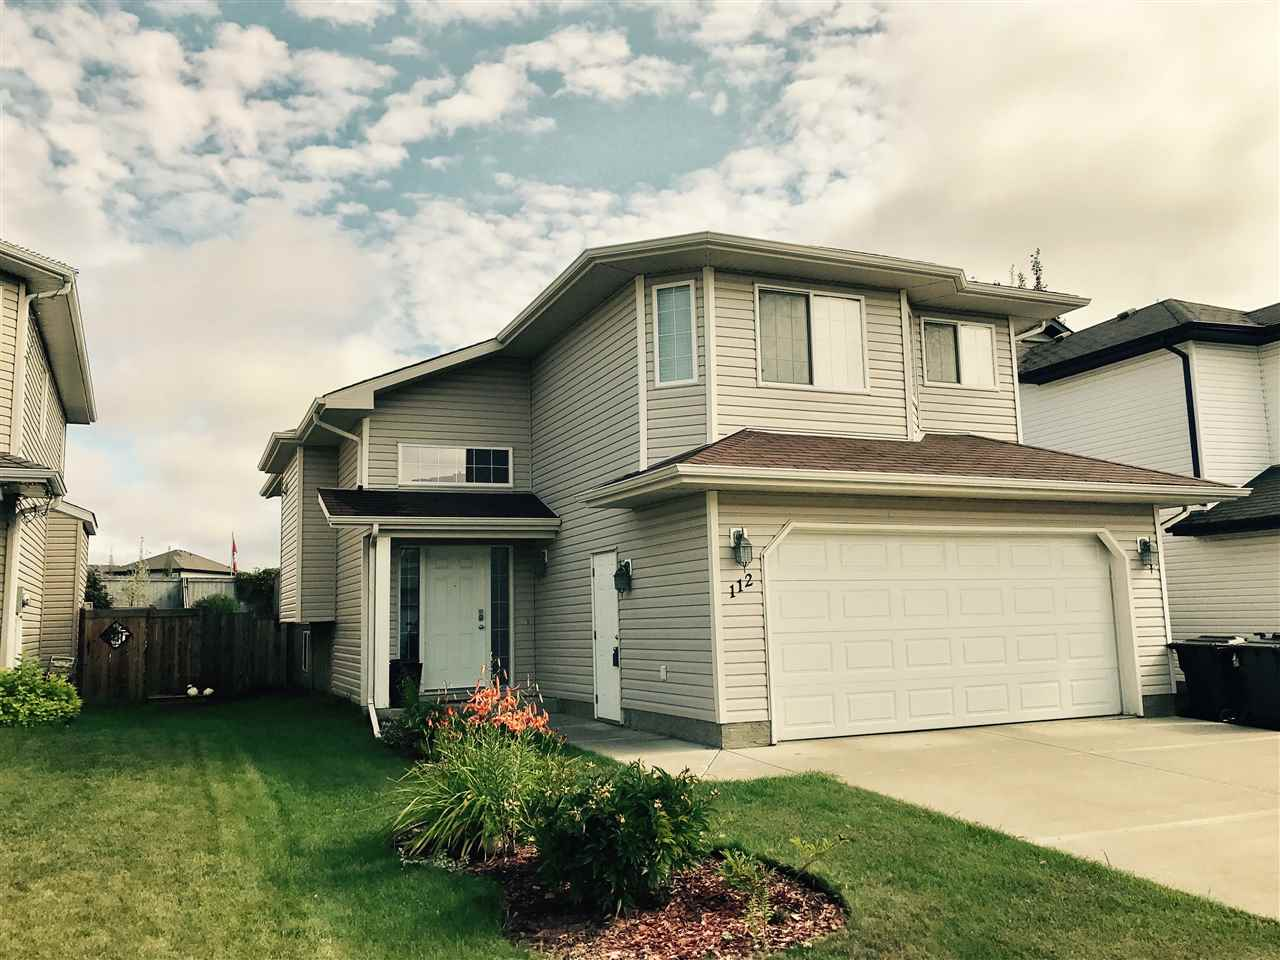 Main Photo: 112 Greystone Crescent: Spruce Grove House for sale : MLS® # E4076831